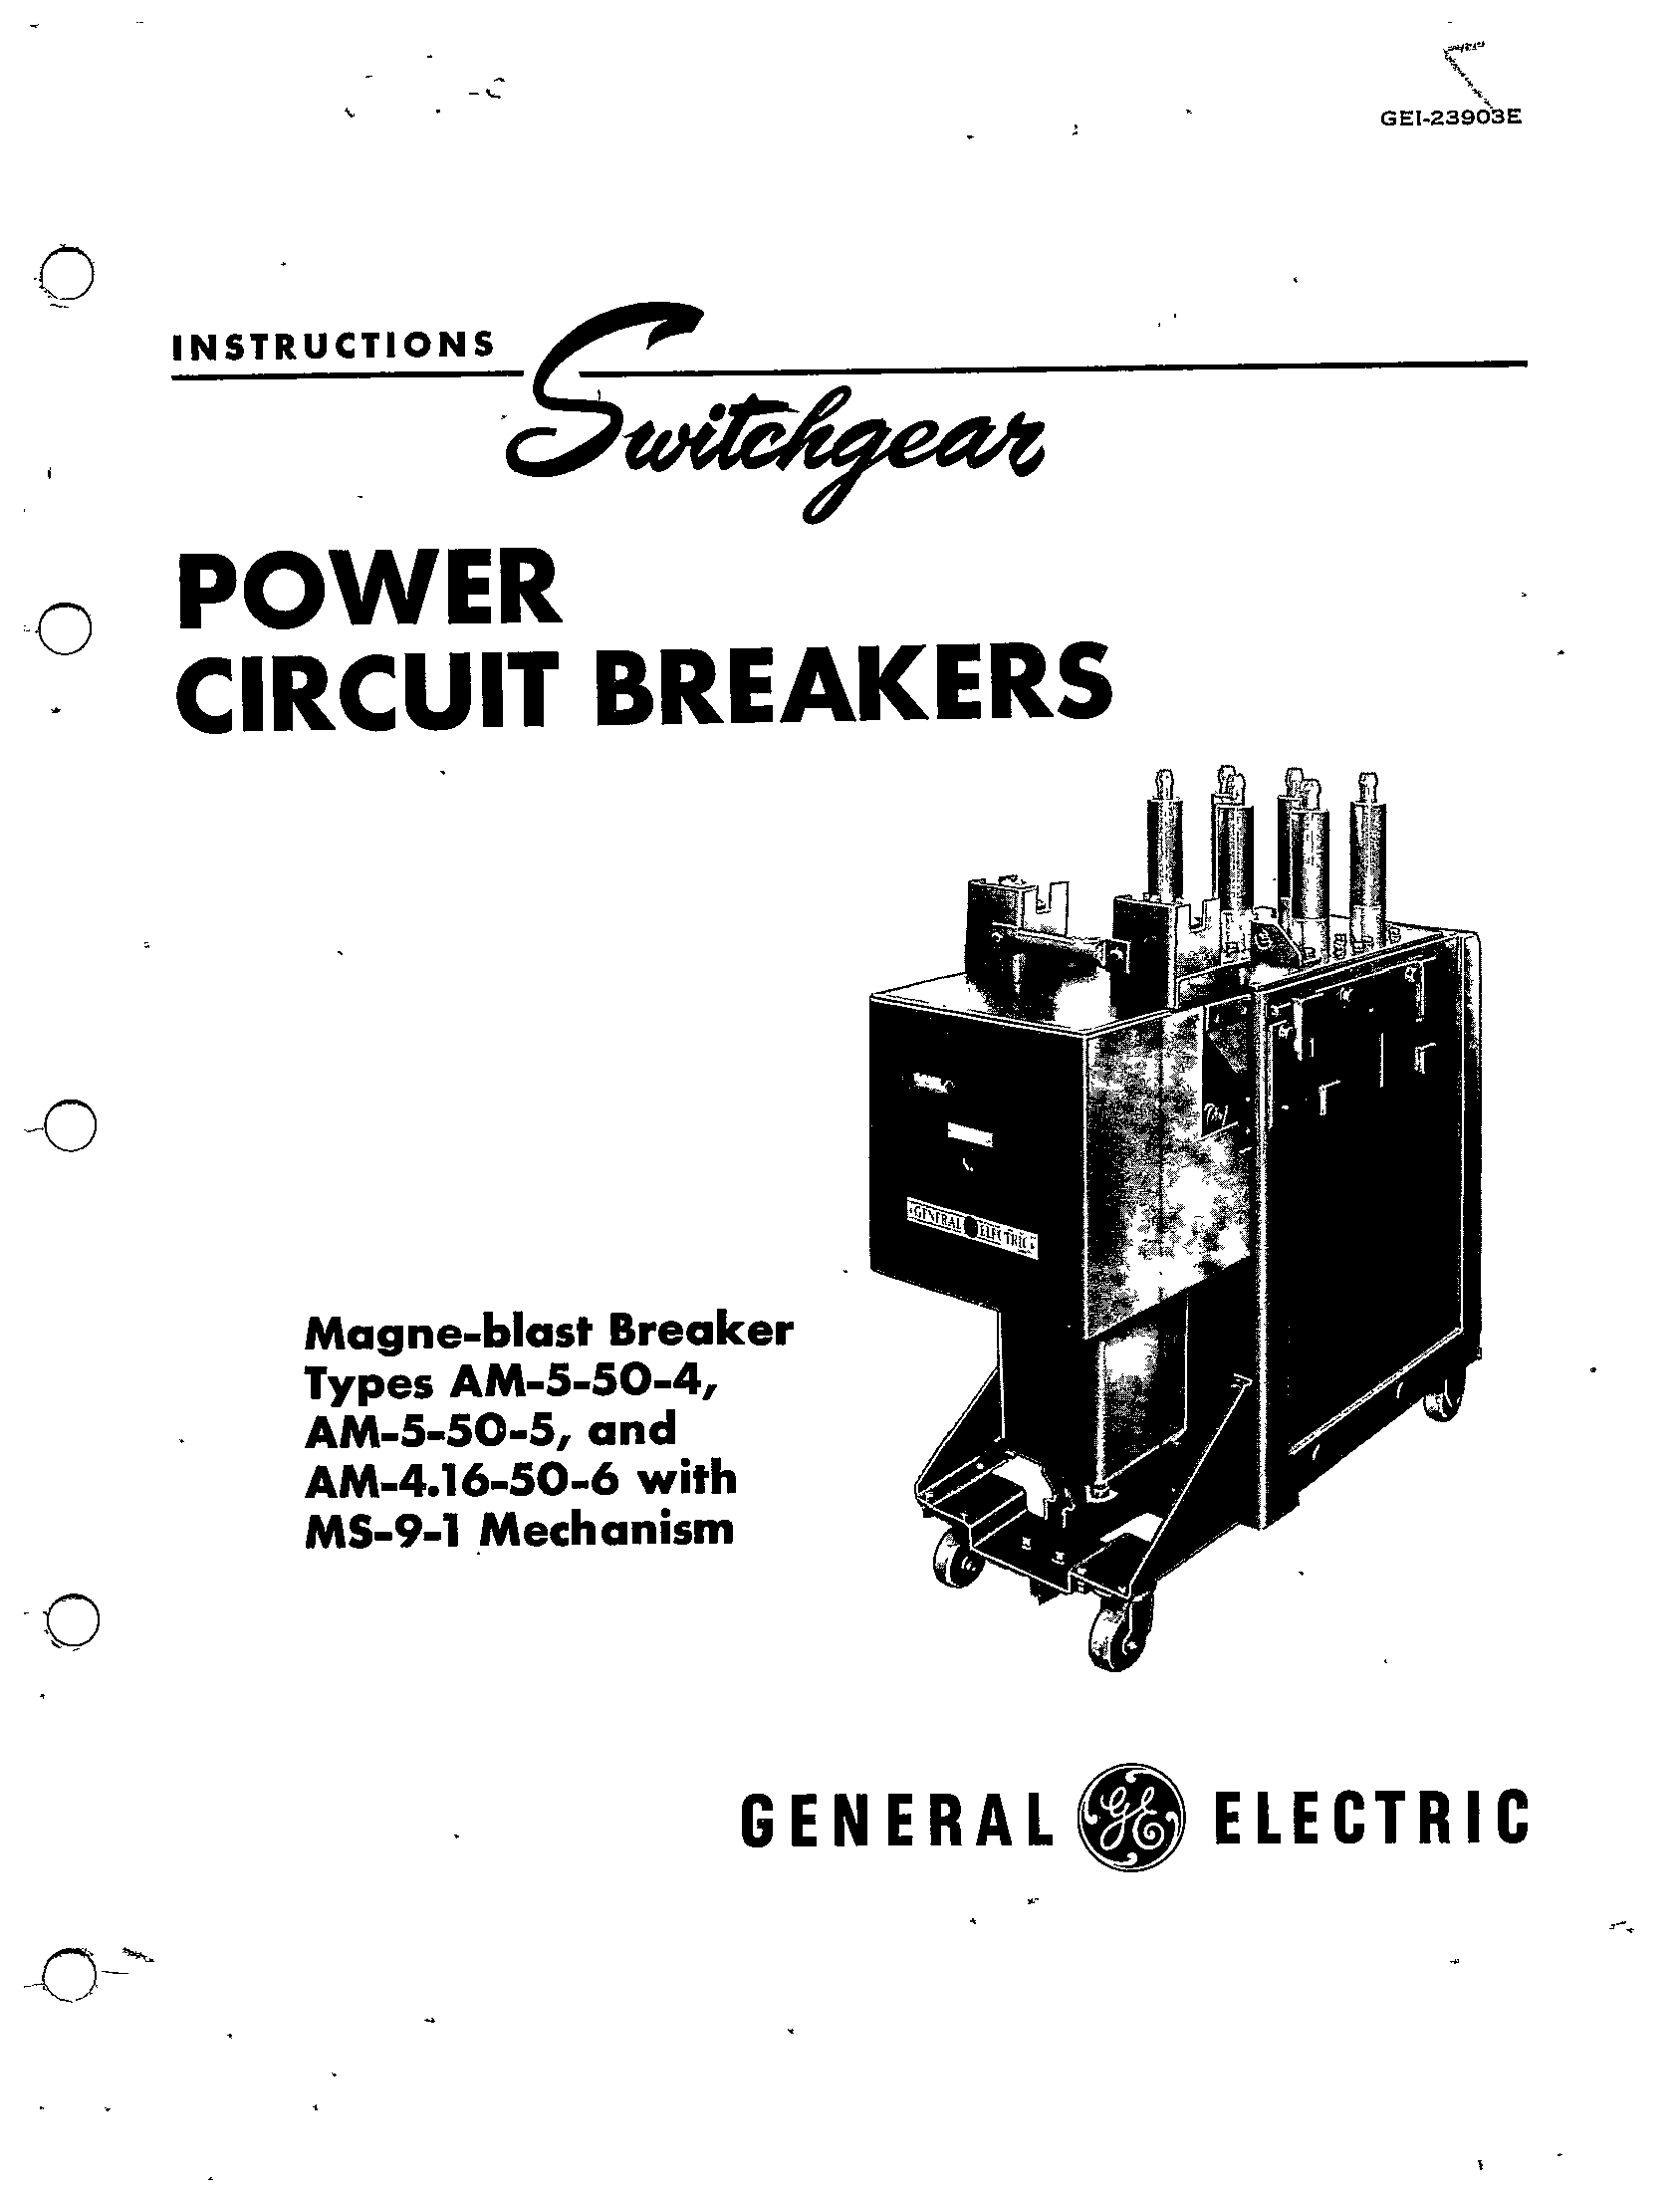 hight resolution of gei 23903e power circuit breakers